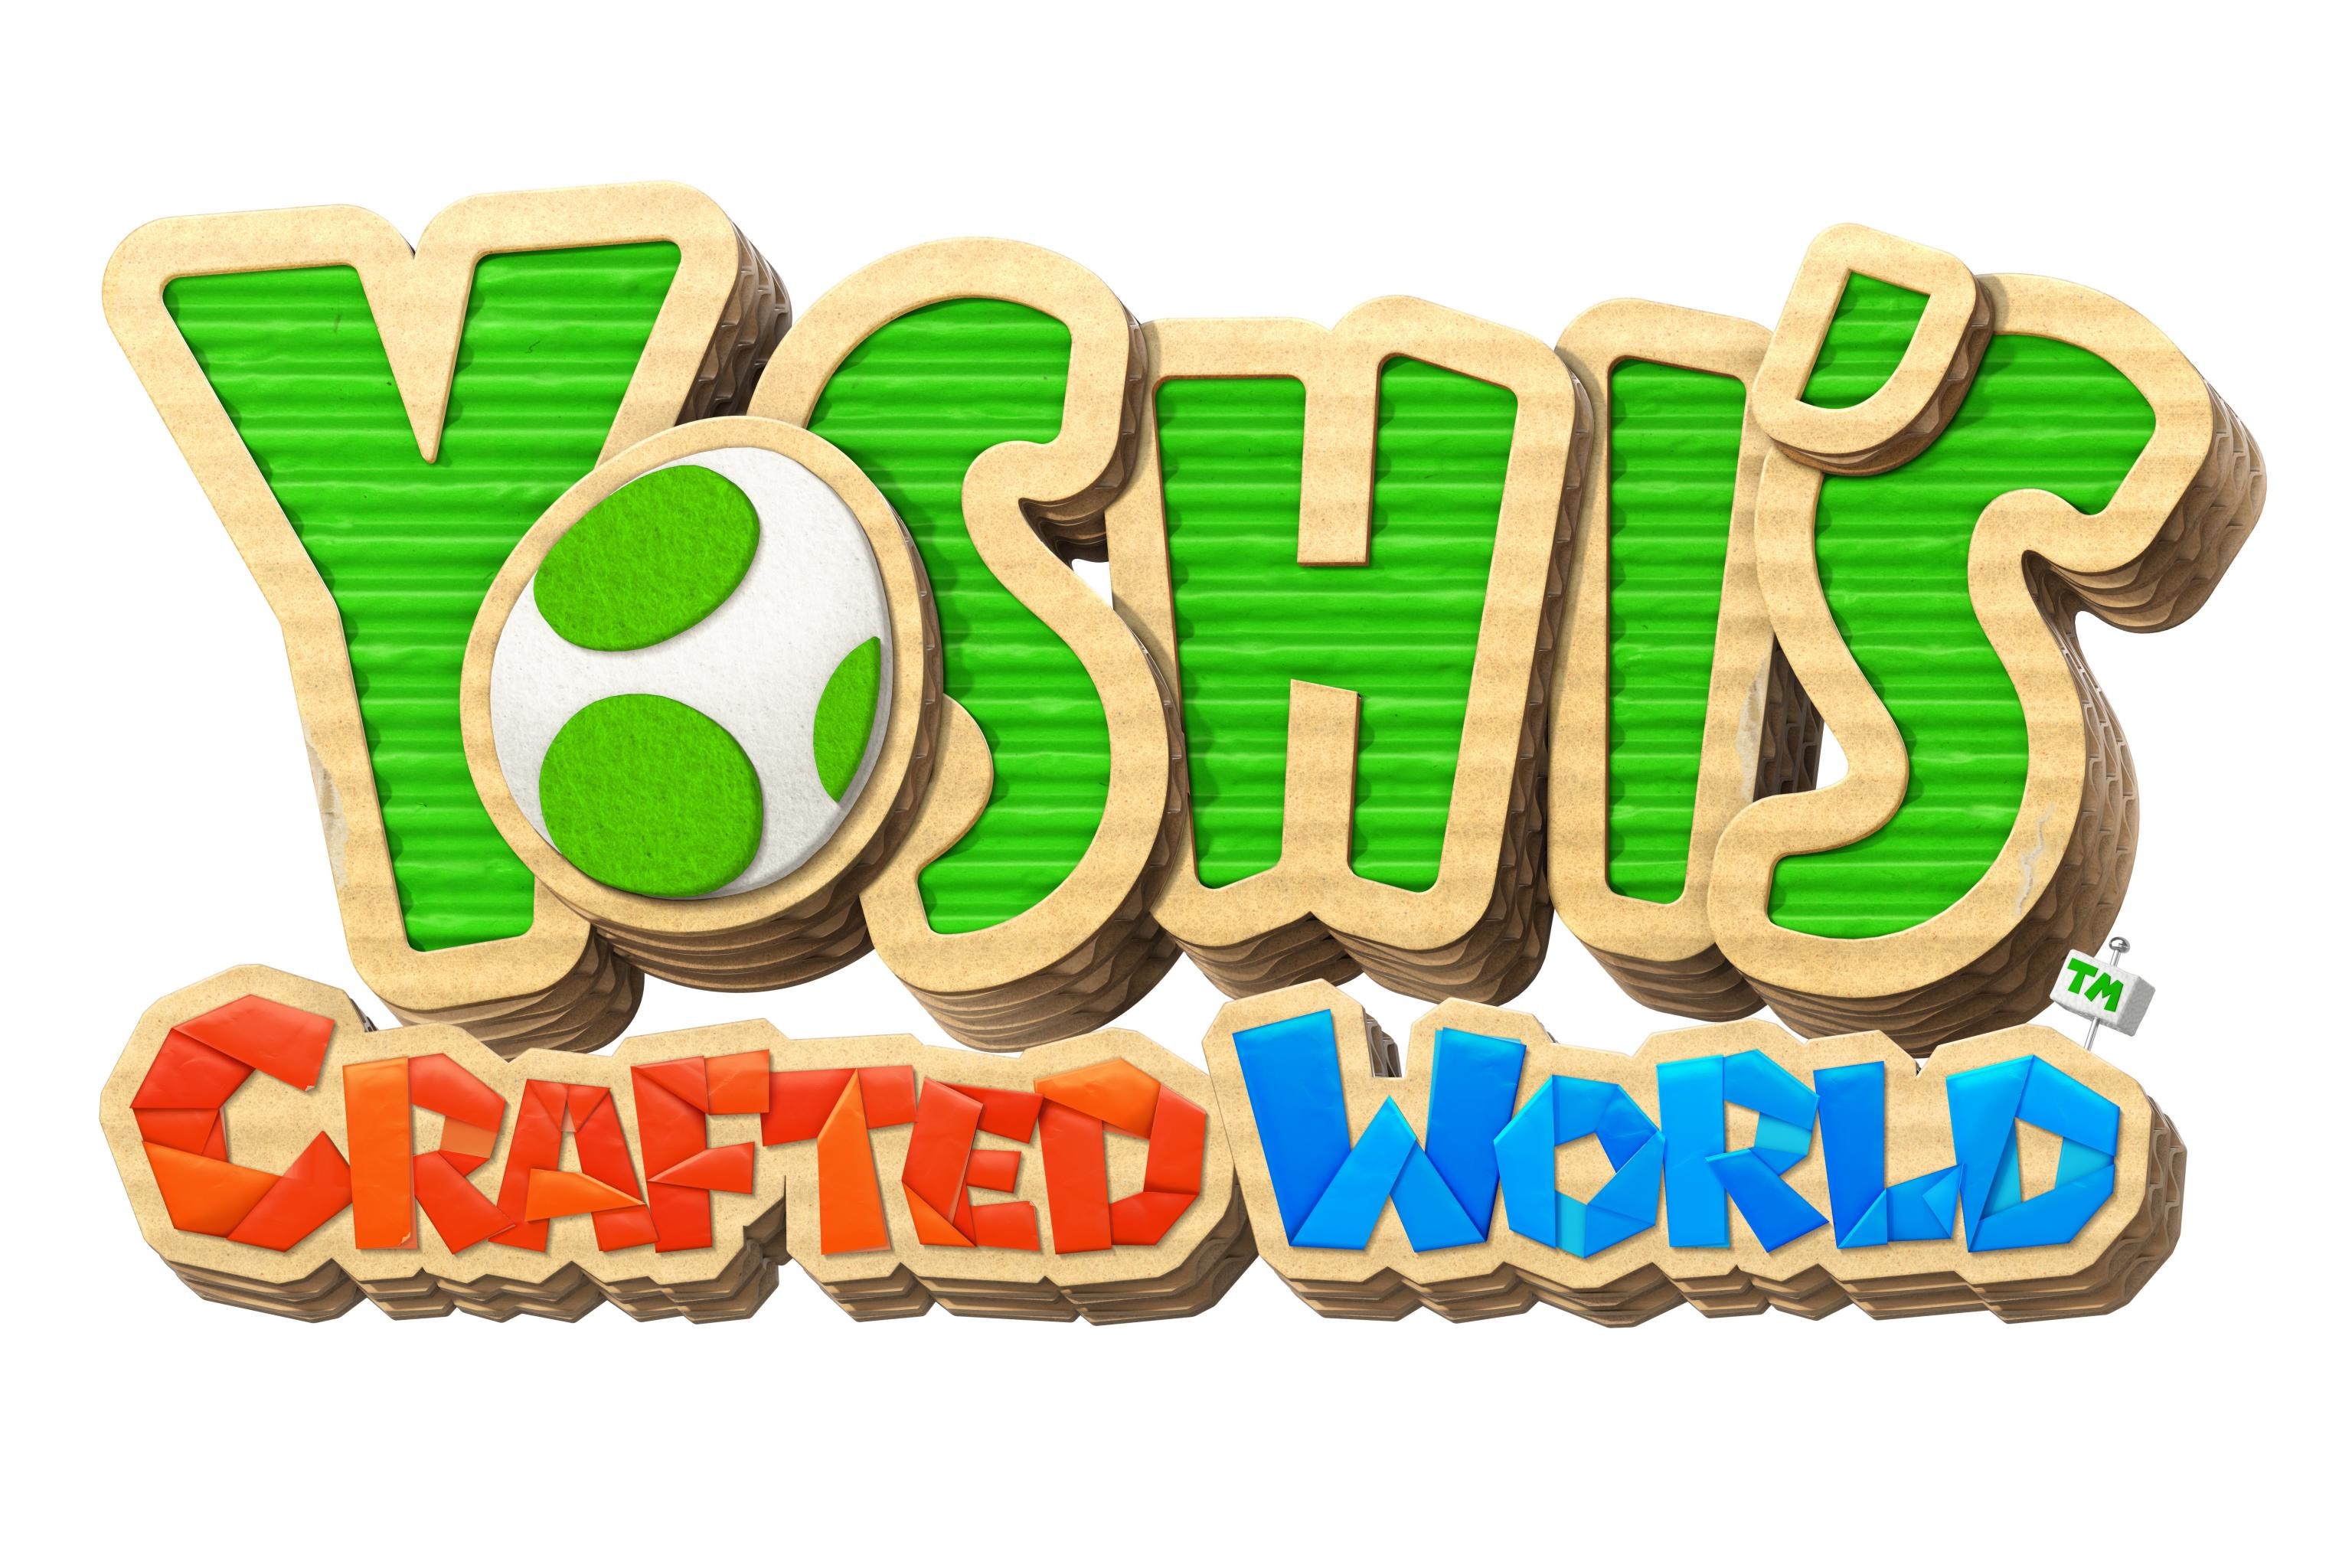 yoshis crafted world logo hd wallpaper 67348